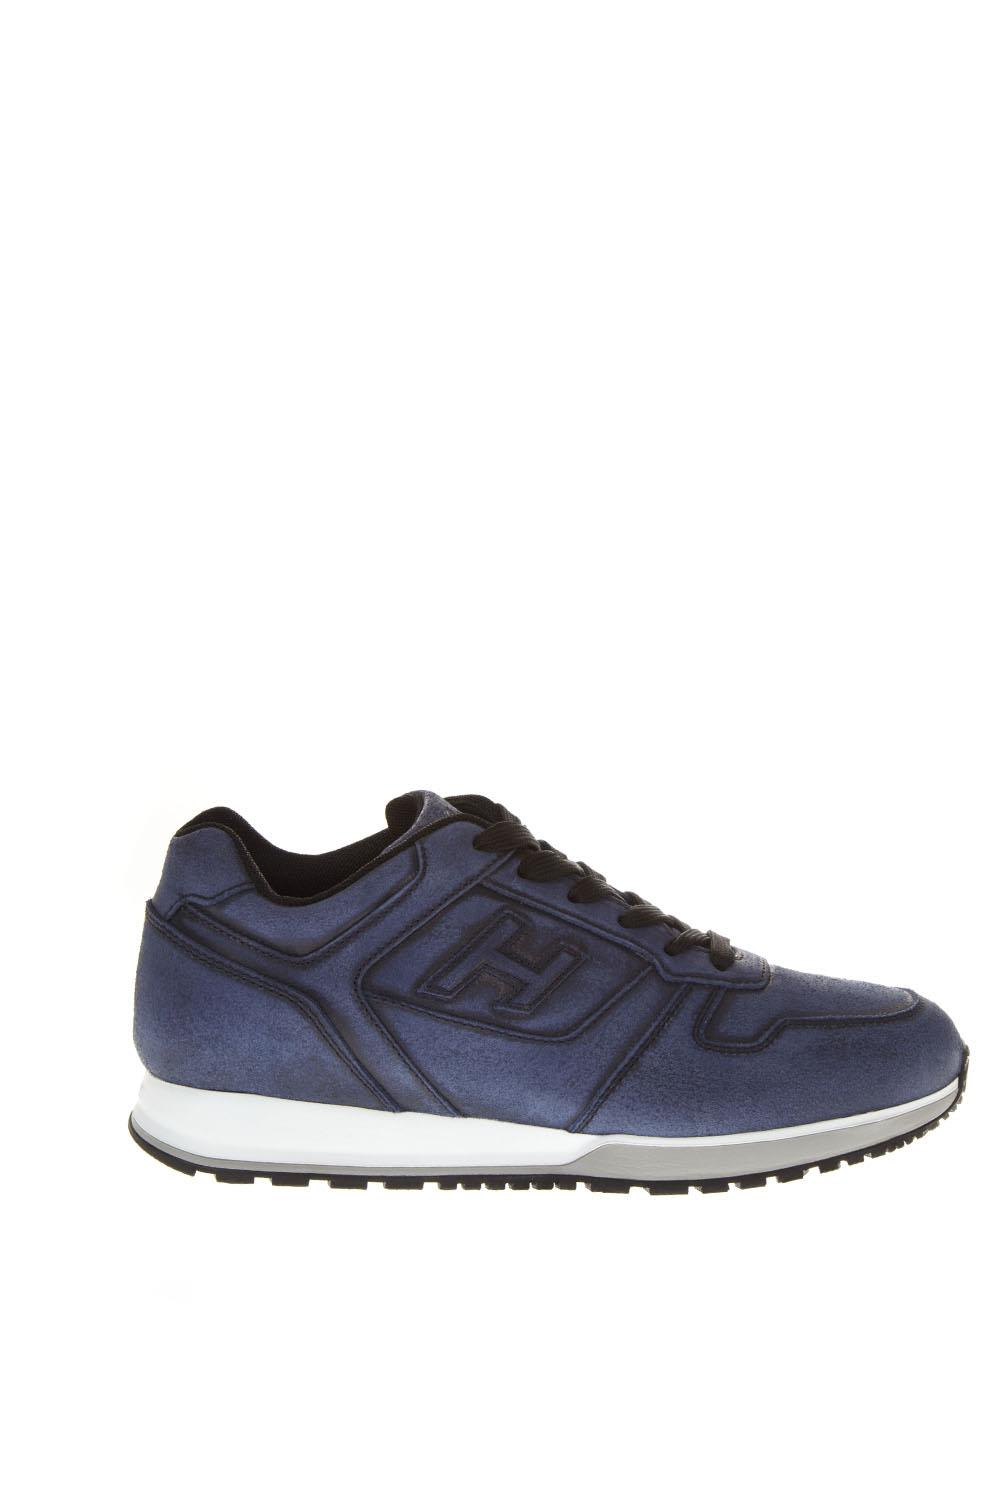 Hogan Blue Leather Sneakers H321